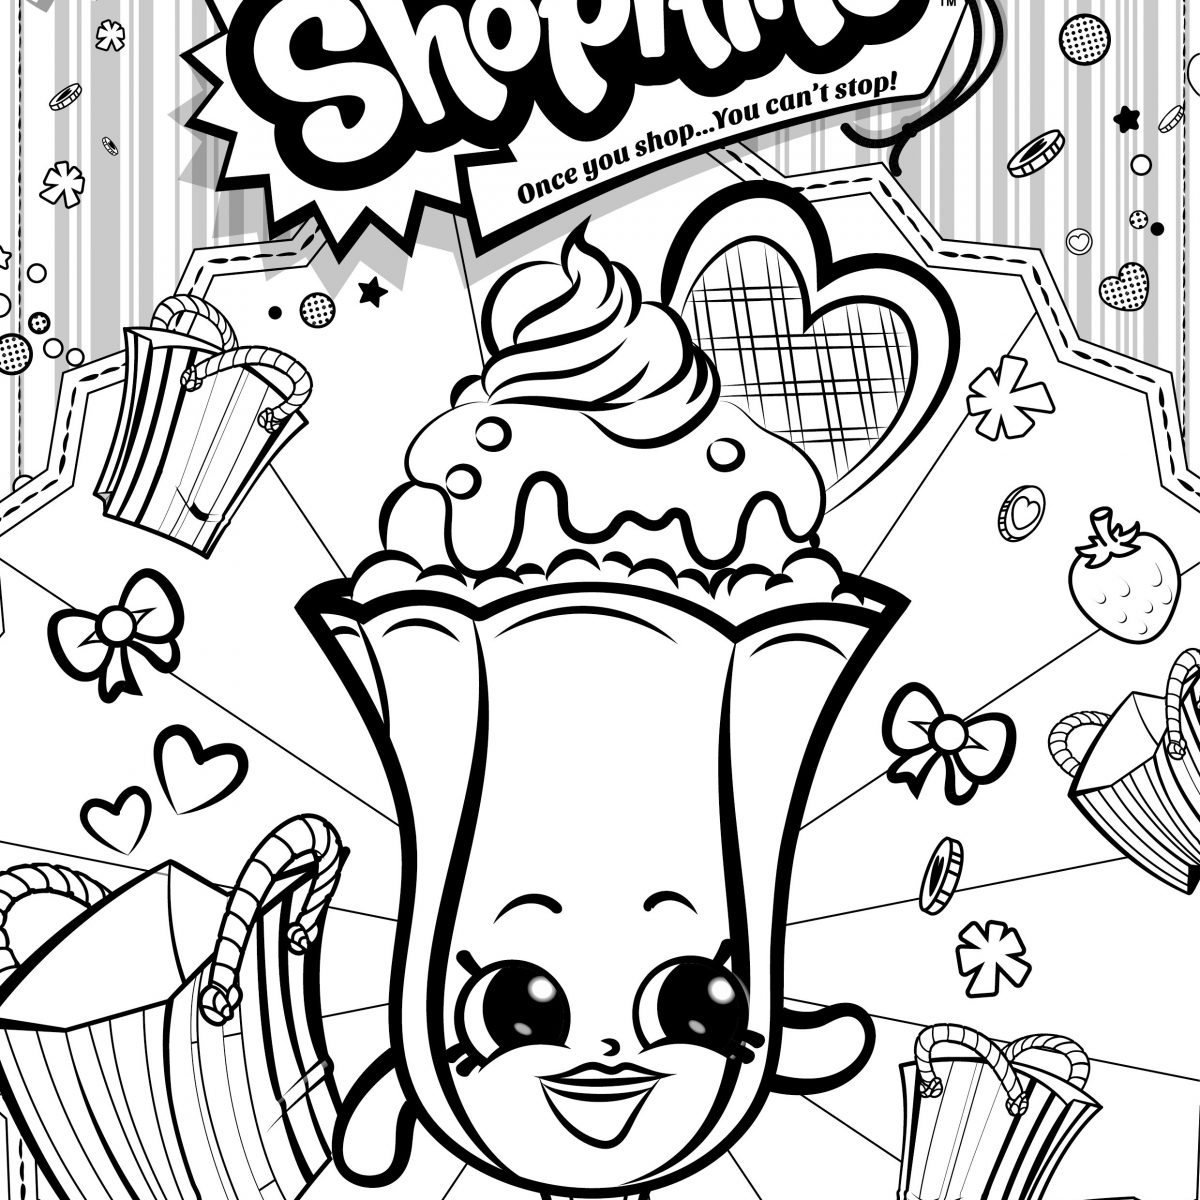 shopkins print out shopkins characters coloring pages at getdrawings free print out shopkins